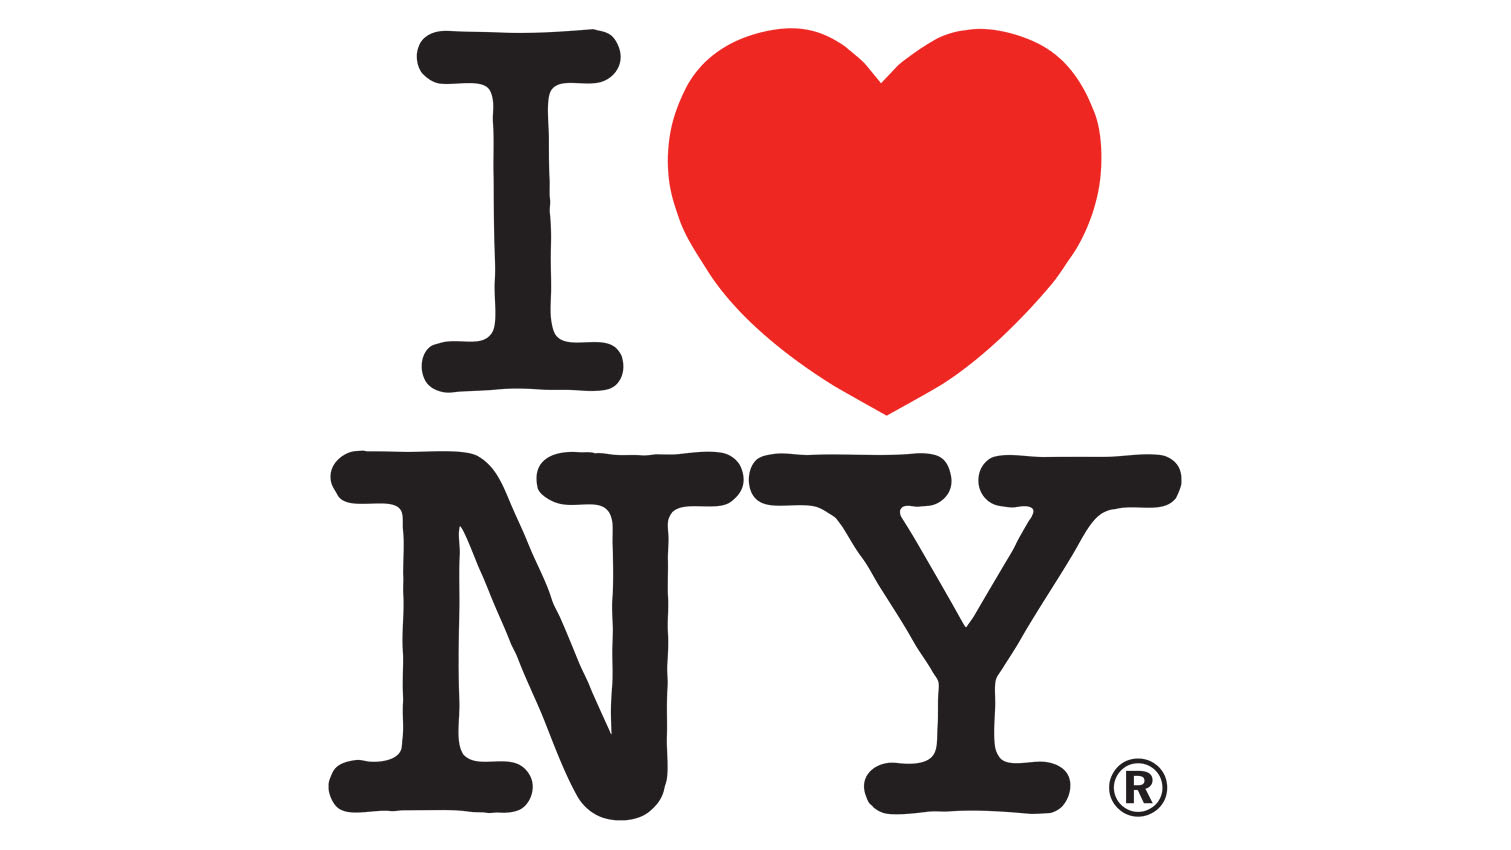 logo i love new york